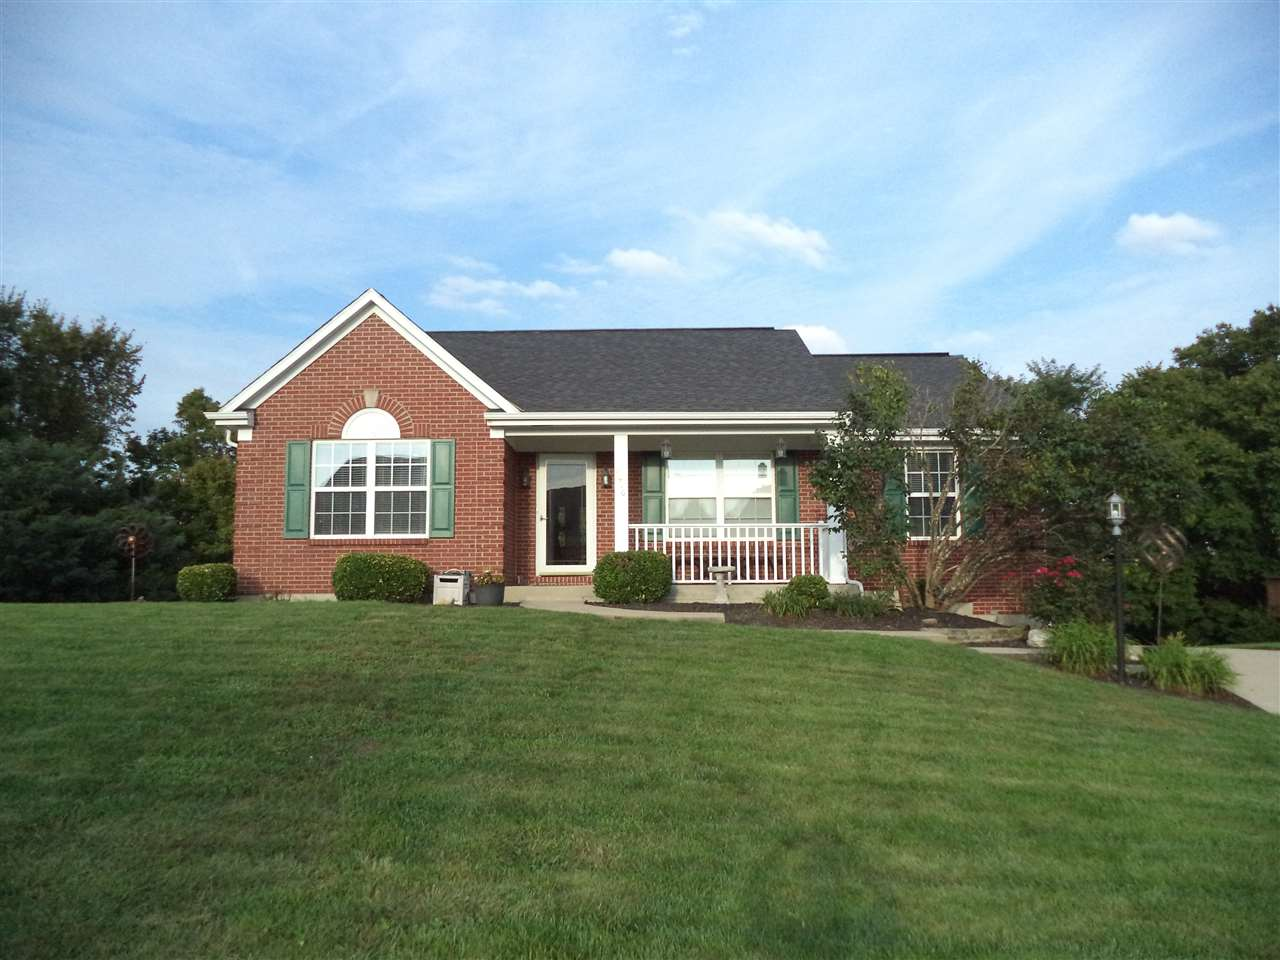 Photo 1 for 2606 Spring Mill Pl Burlington, KY 41005